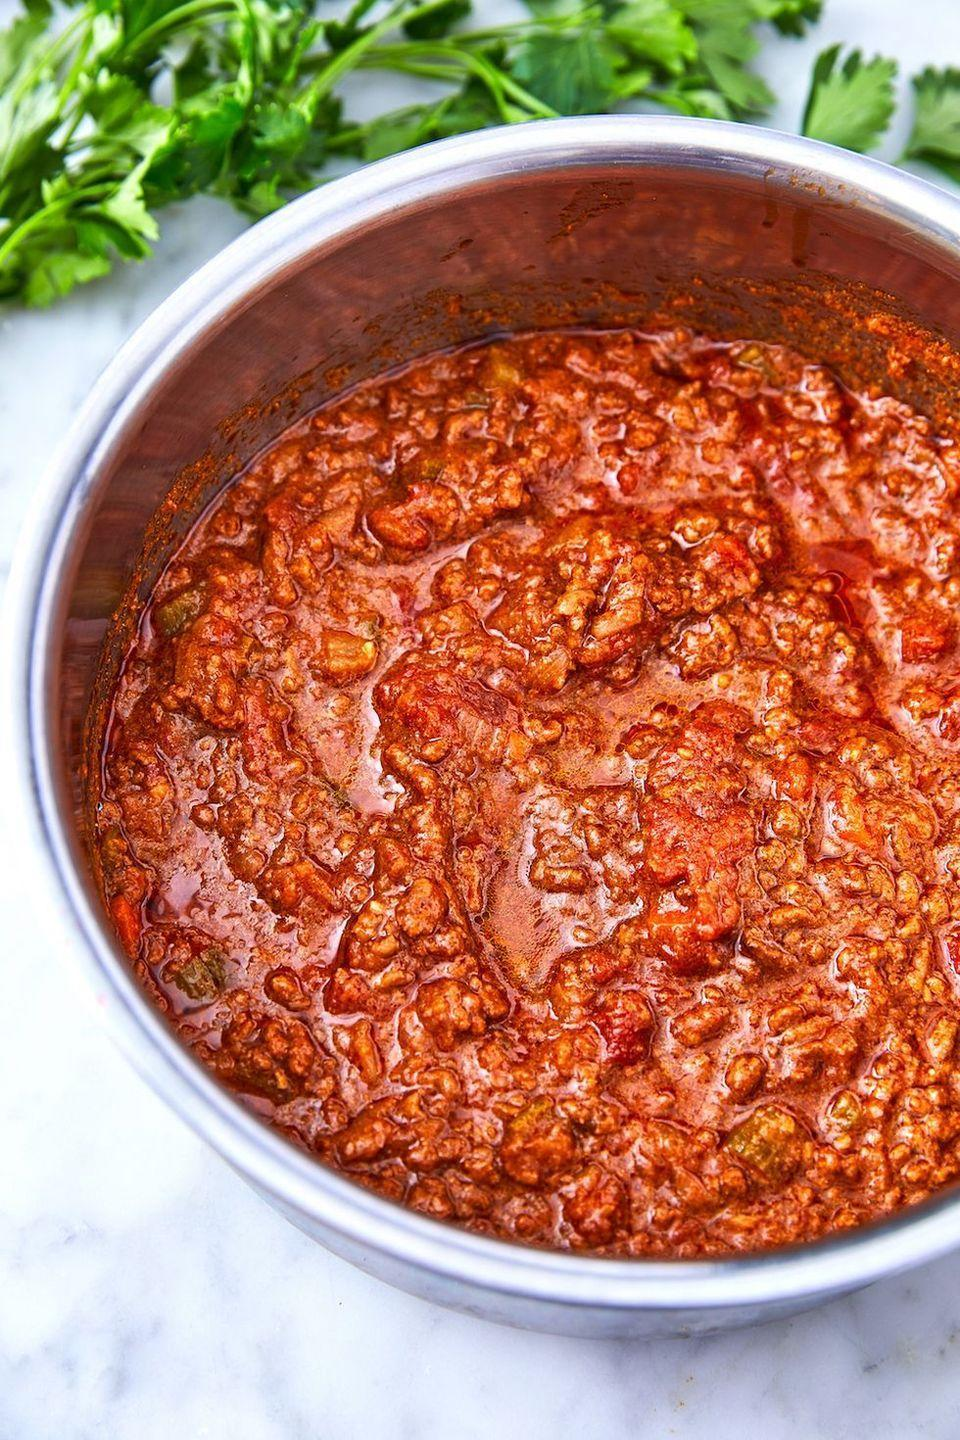 """<p>Bolognese is so much more than just a meat sauce. It's the ultimate way to transform a package of minced beef into something show-stopping. When the temperature starts to drop, what sounds better than pasta smothered in rich, hearty, umami-bomb bolognese? NOTHING.</p><p>Get the <a href=""""https://www.delish.com/uk/cooking/recipes/a29755014/bolognese-sauce-recipe/"""" rel=""""nofollow noopener"""" target=""""_blank"""" data-ylk=""""slk:Bolognese"""" class=""""link rapid-noclick-resp"""">Bolognese</a> recipe.</p>"""